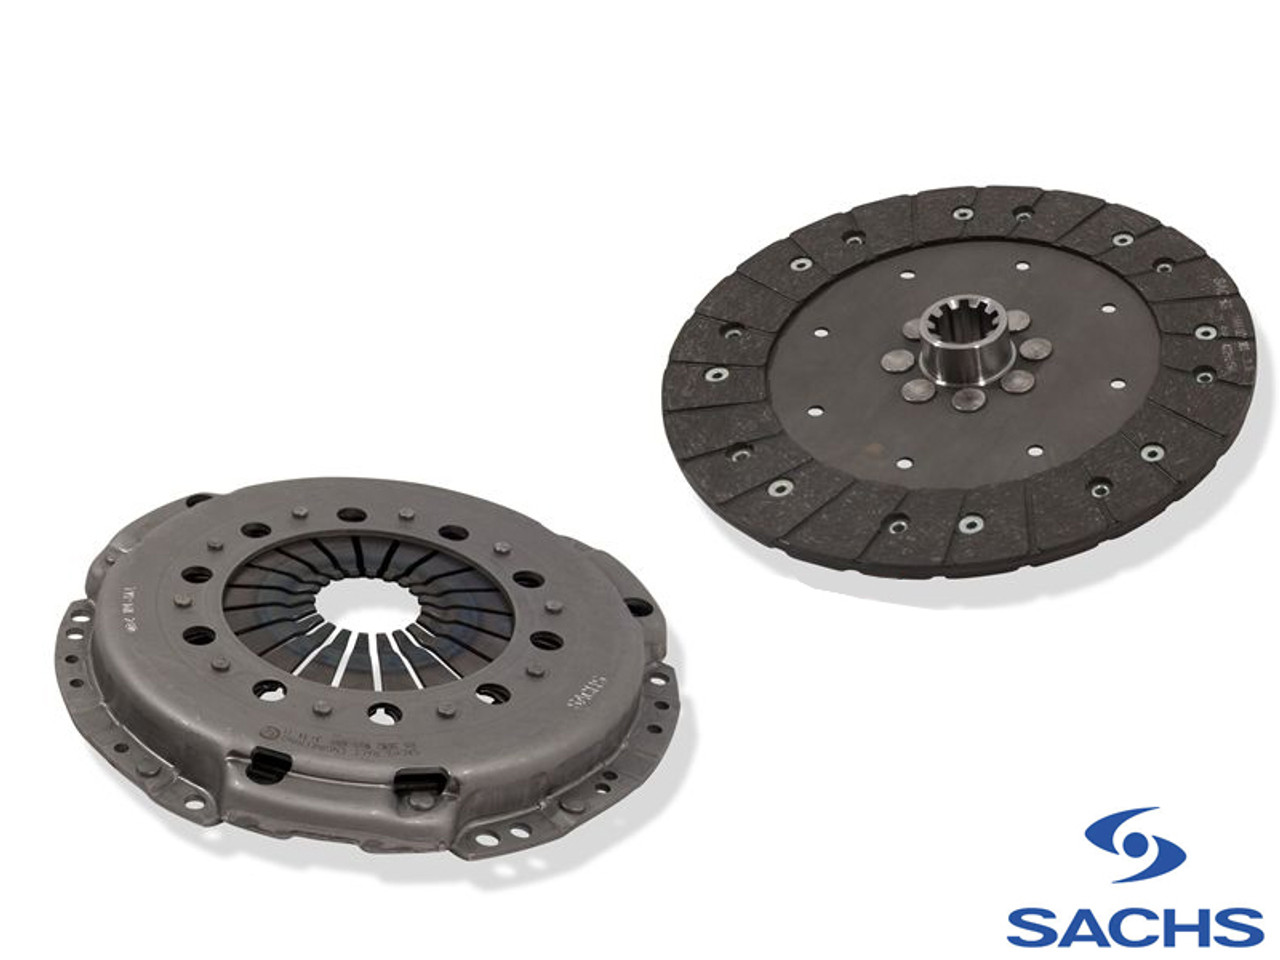 Sachs Performance Clutch Kit For Audi A4 B6 19tdi Awesome Gti